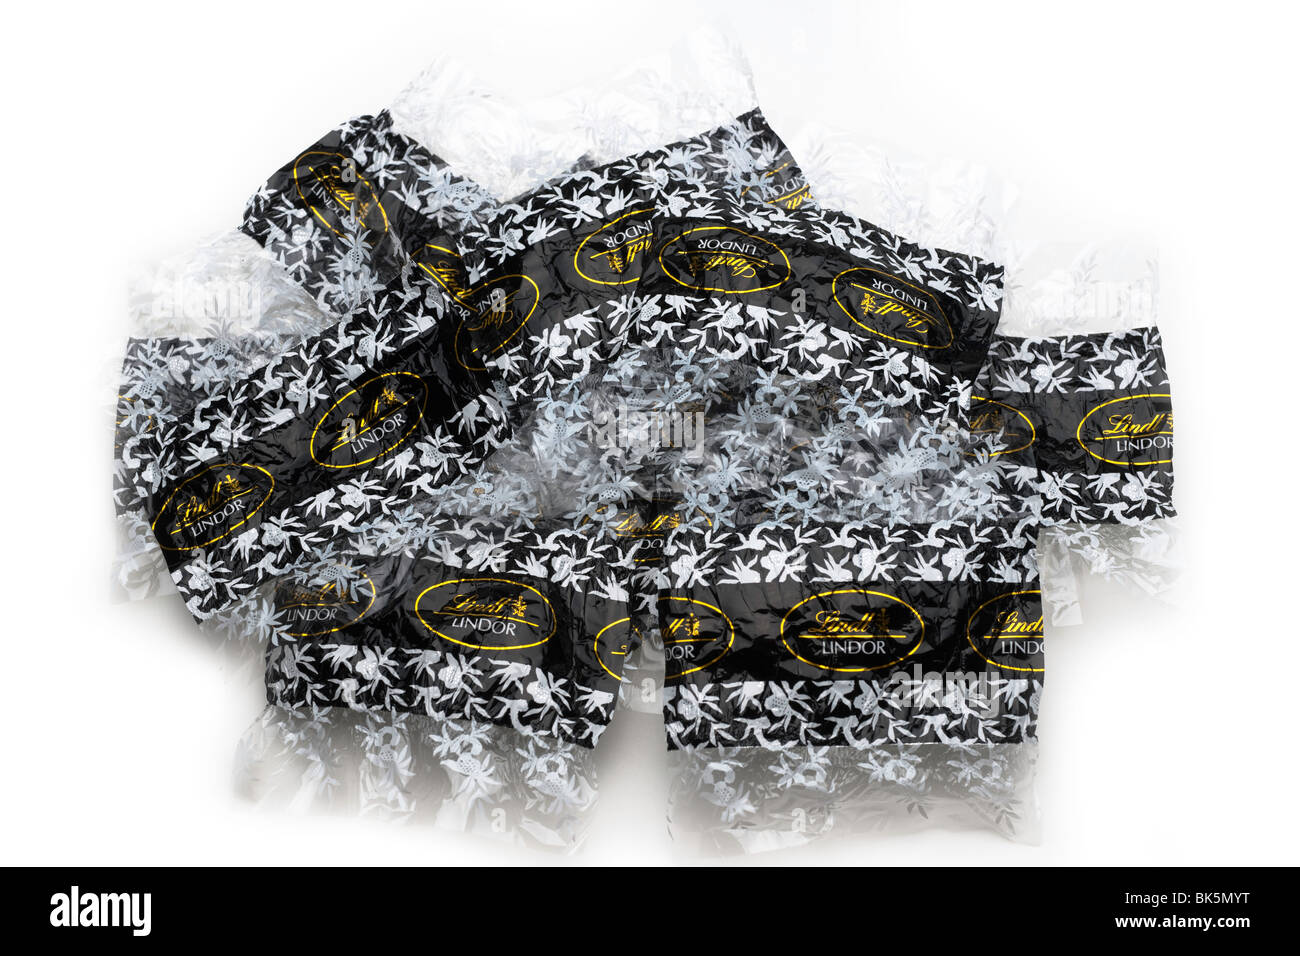 Pile of Lintz Lindor chocolate wrappers - Stock Image